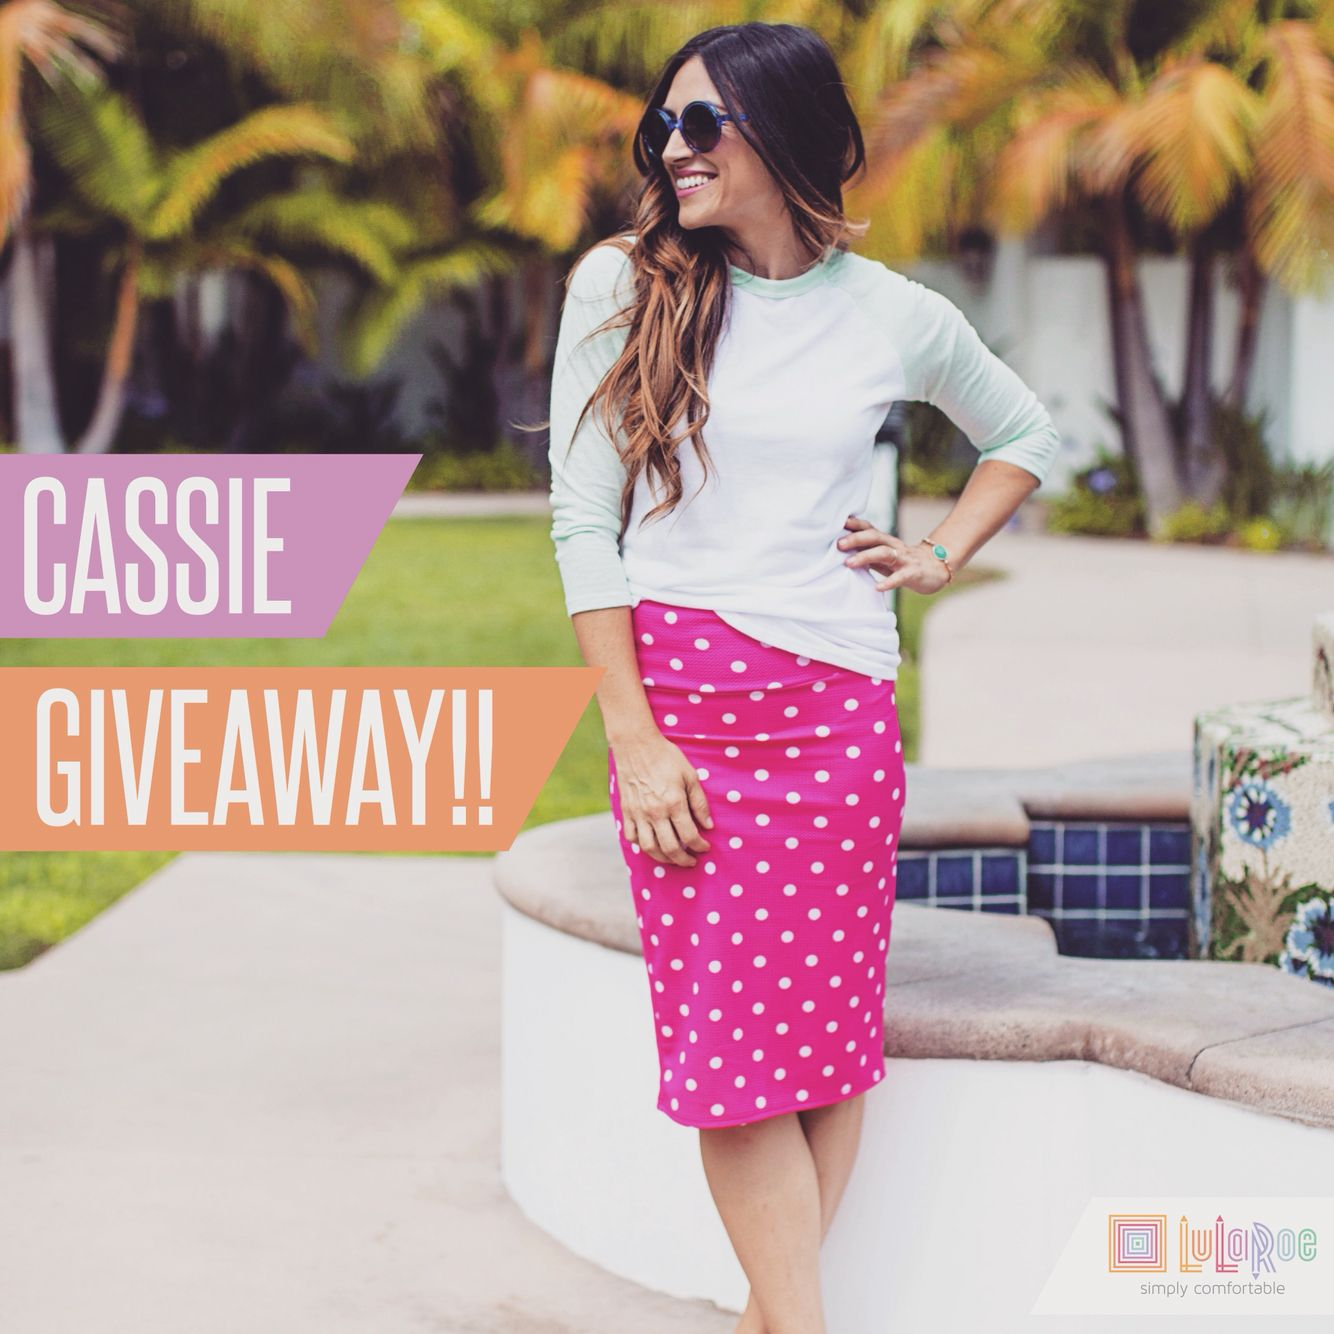 Cassie giveaway!!! Jump over to my Facebook group to shop